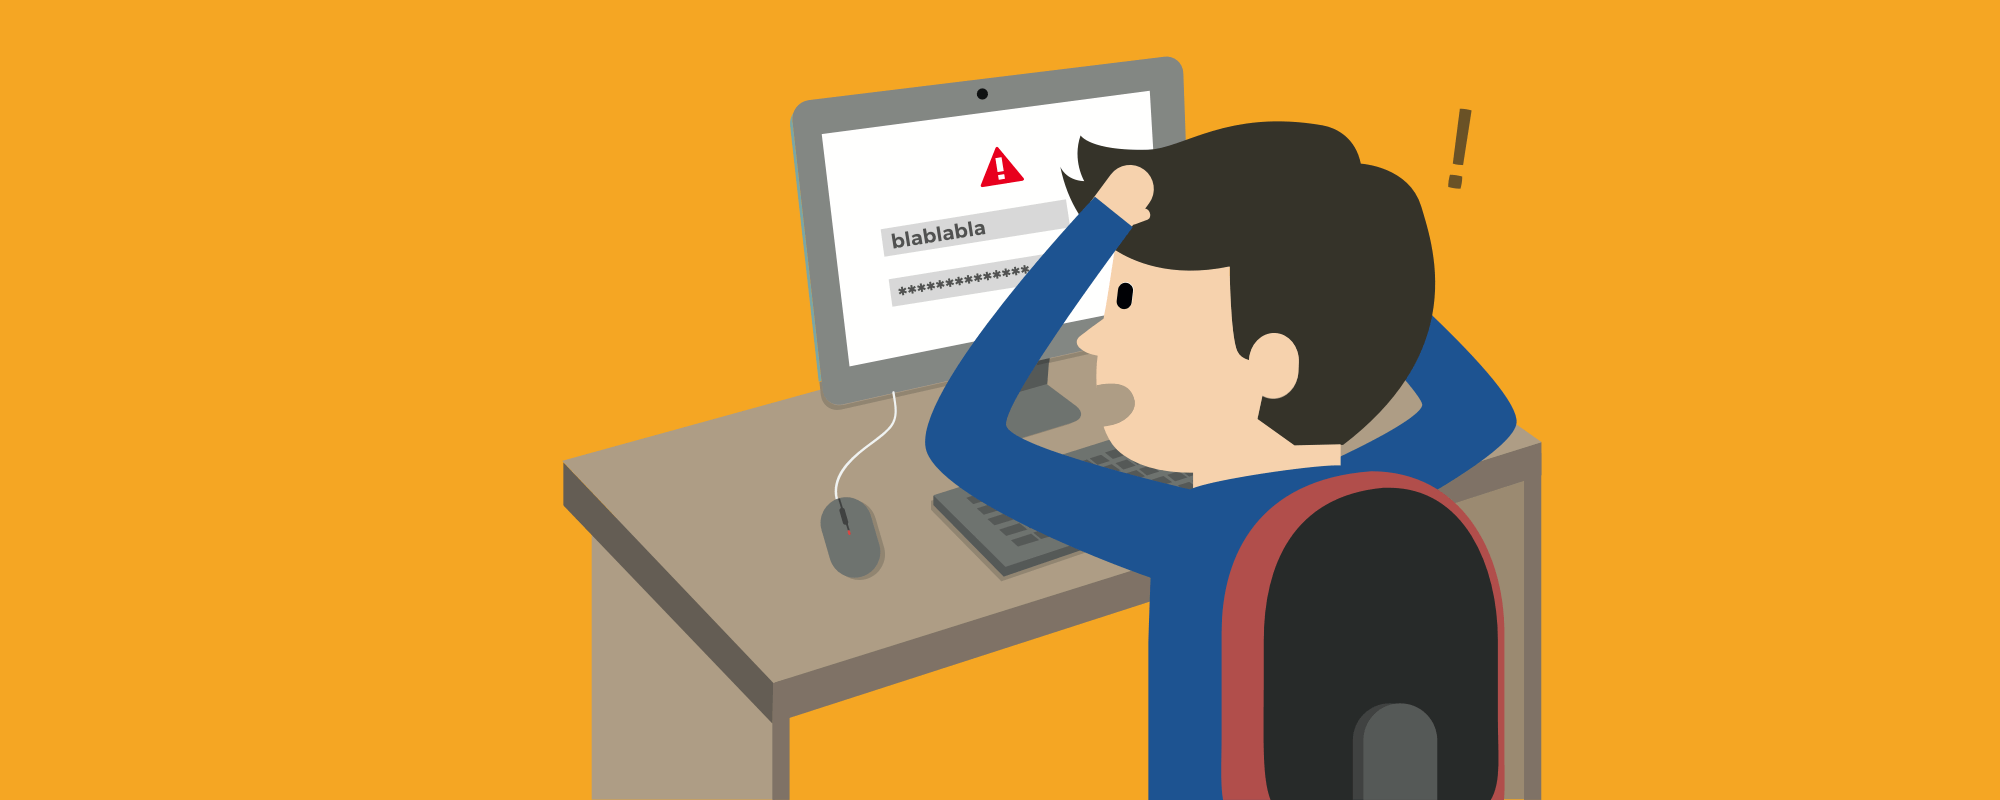 Worst design flaws in internet banking portals (& how to remove them)